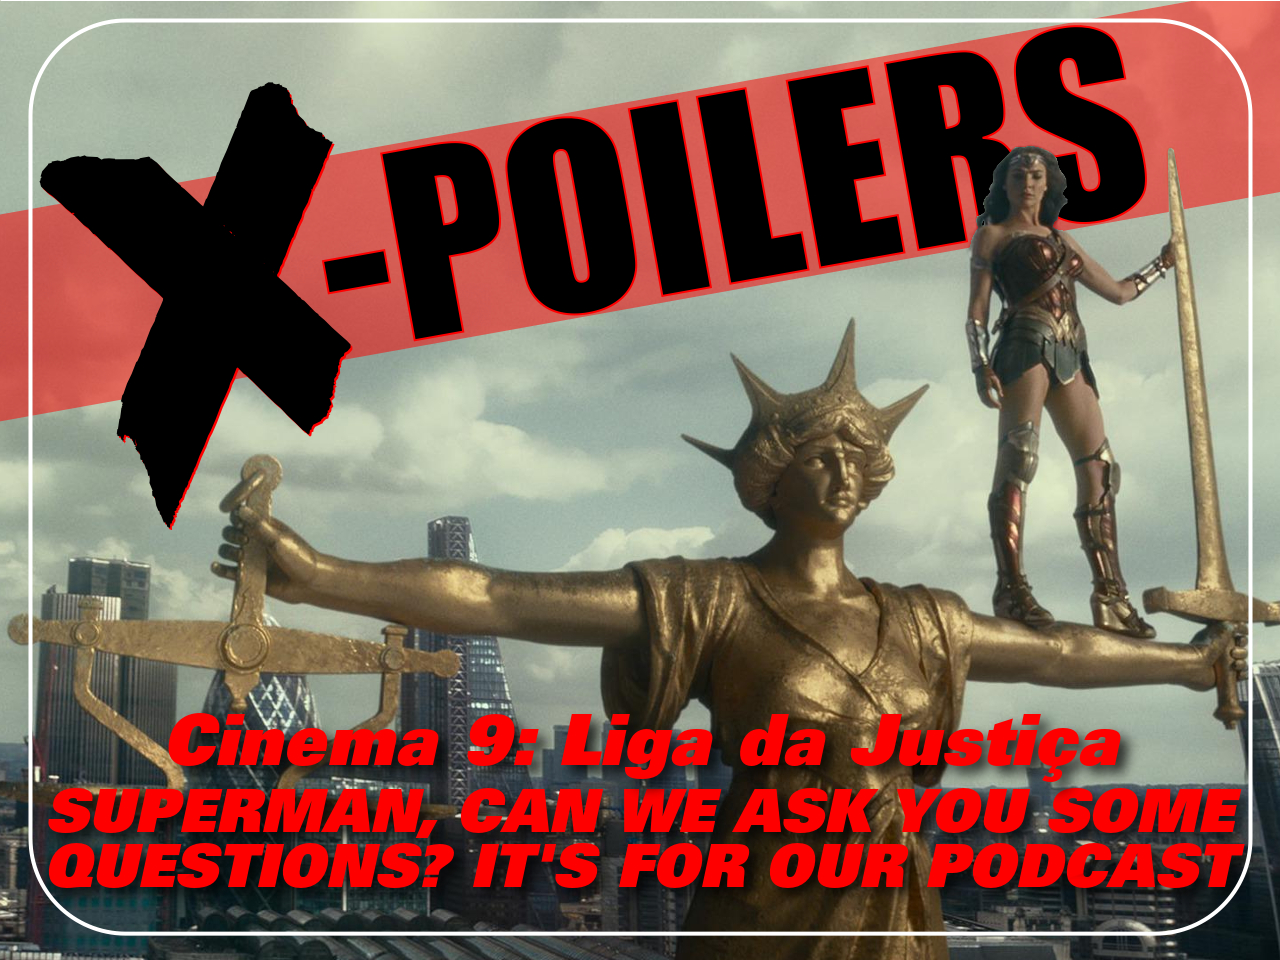 Superman, can we ask you some questions? It's for our podcast